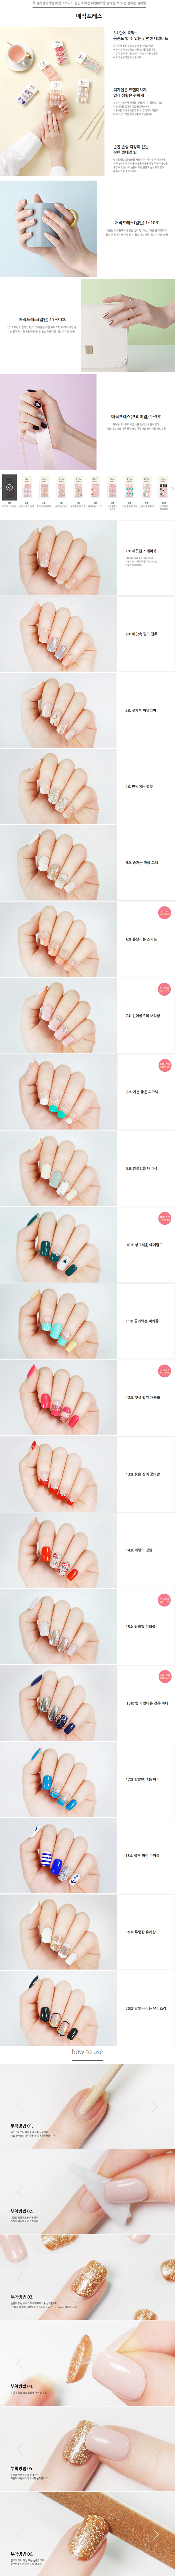 Innisfree,Makeup,Nail,Nail Art,NewArrival-20173,,